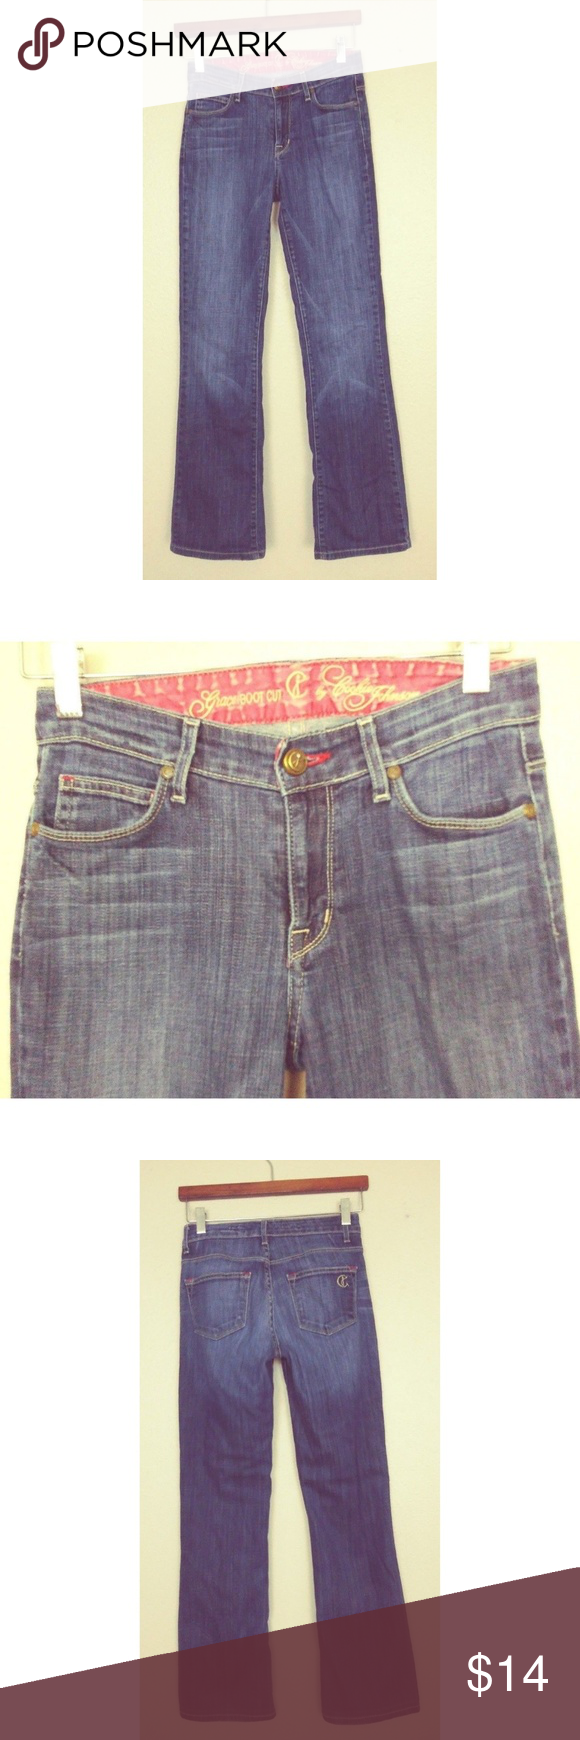 8268c58f073 CJ Cookie Johnson Grace Bootcut Jeans Low Rise Nice pair of jeans from CJ by  Cookie